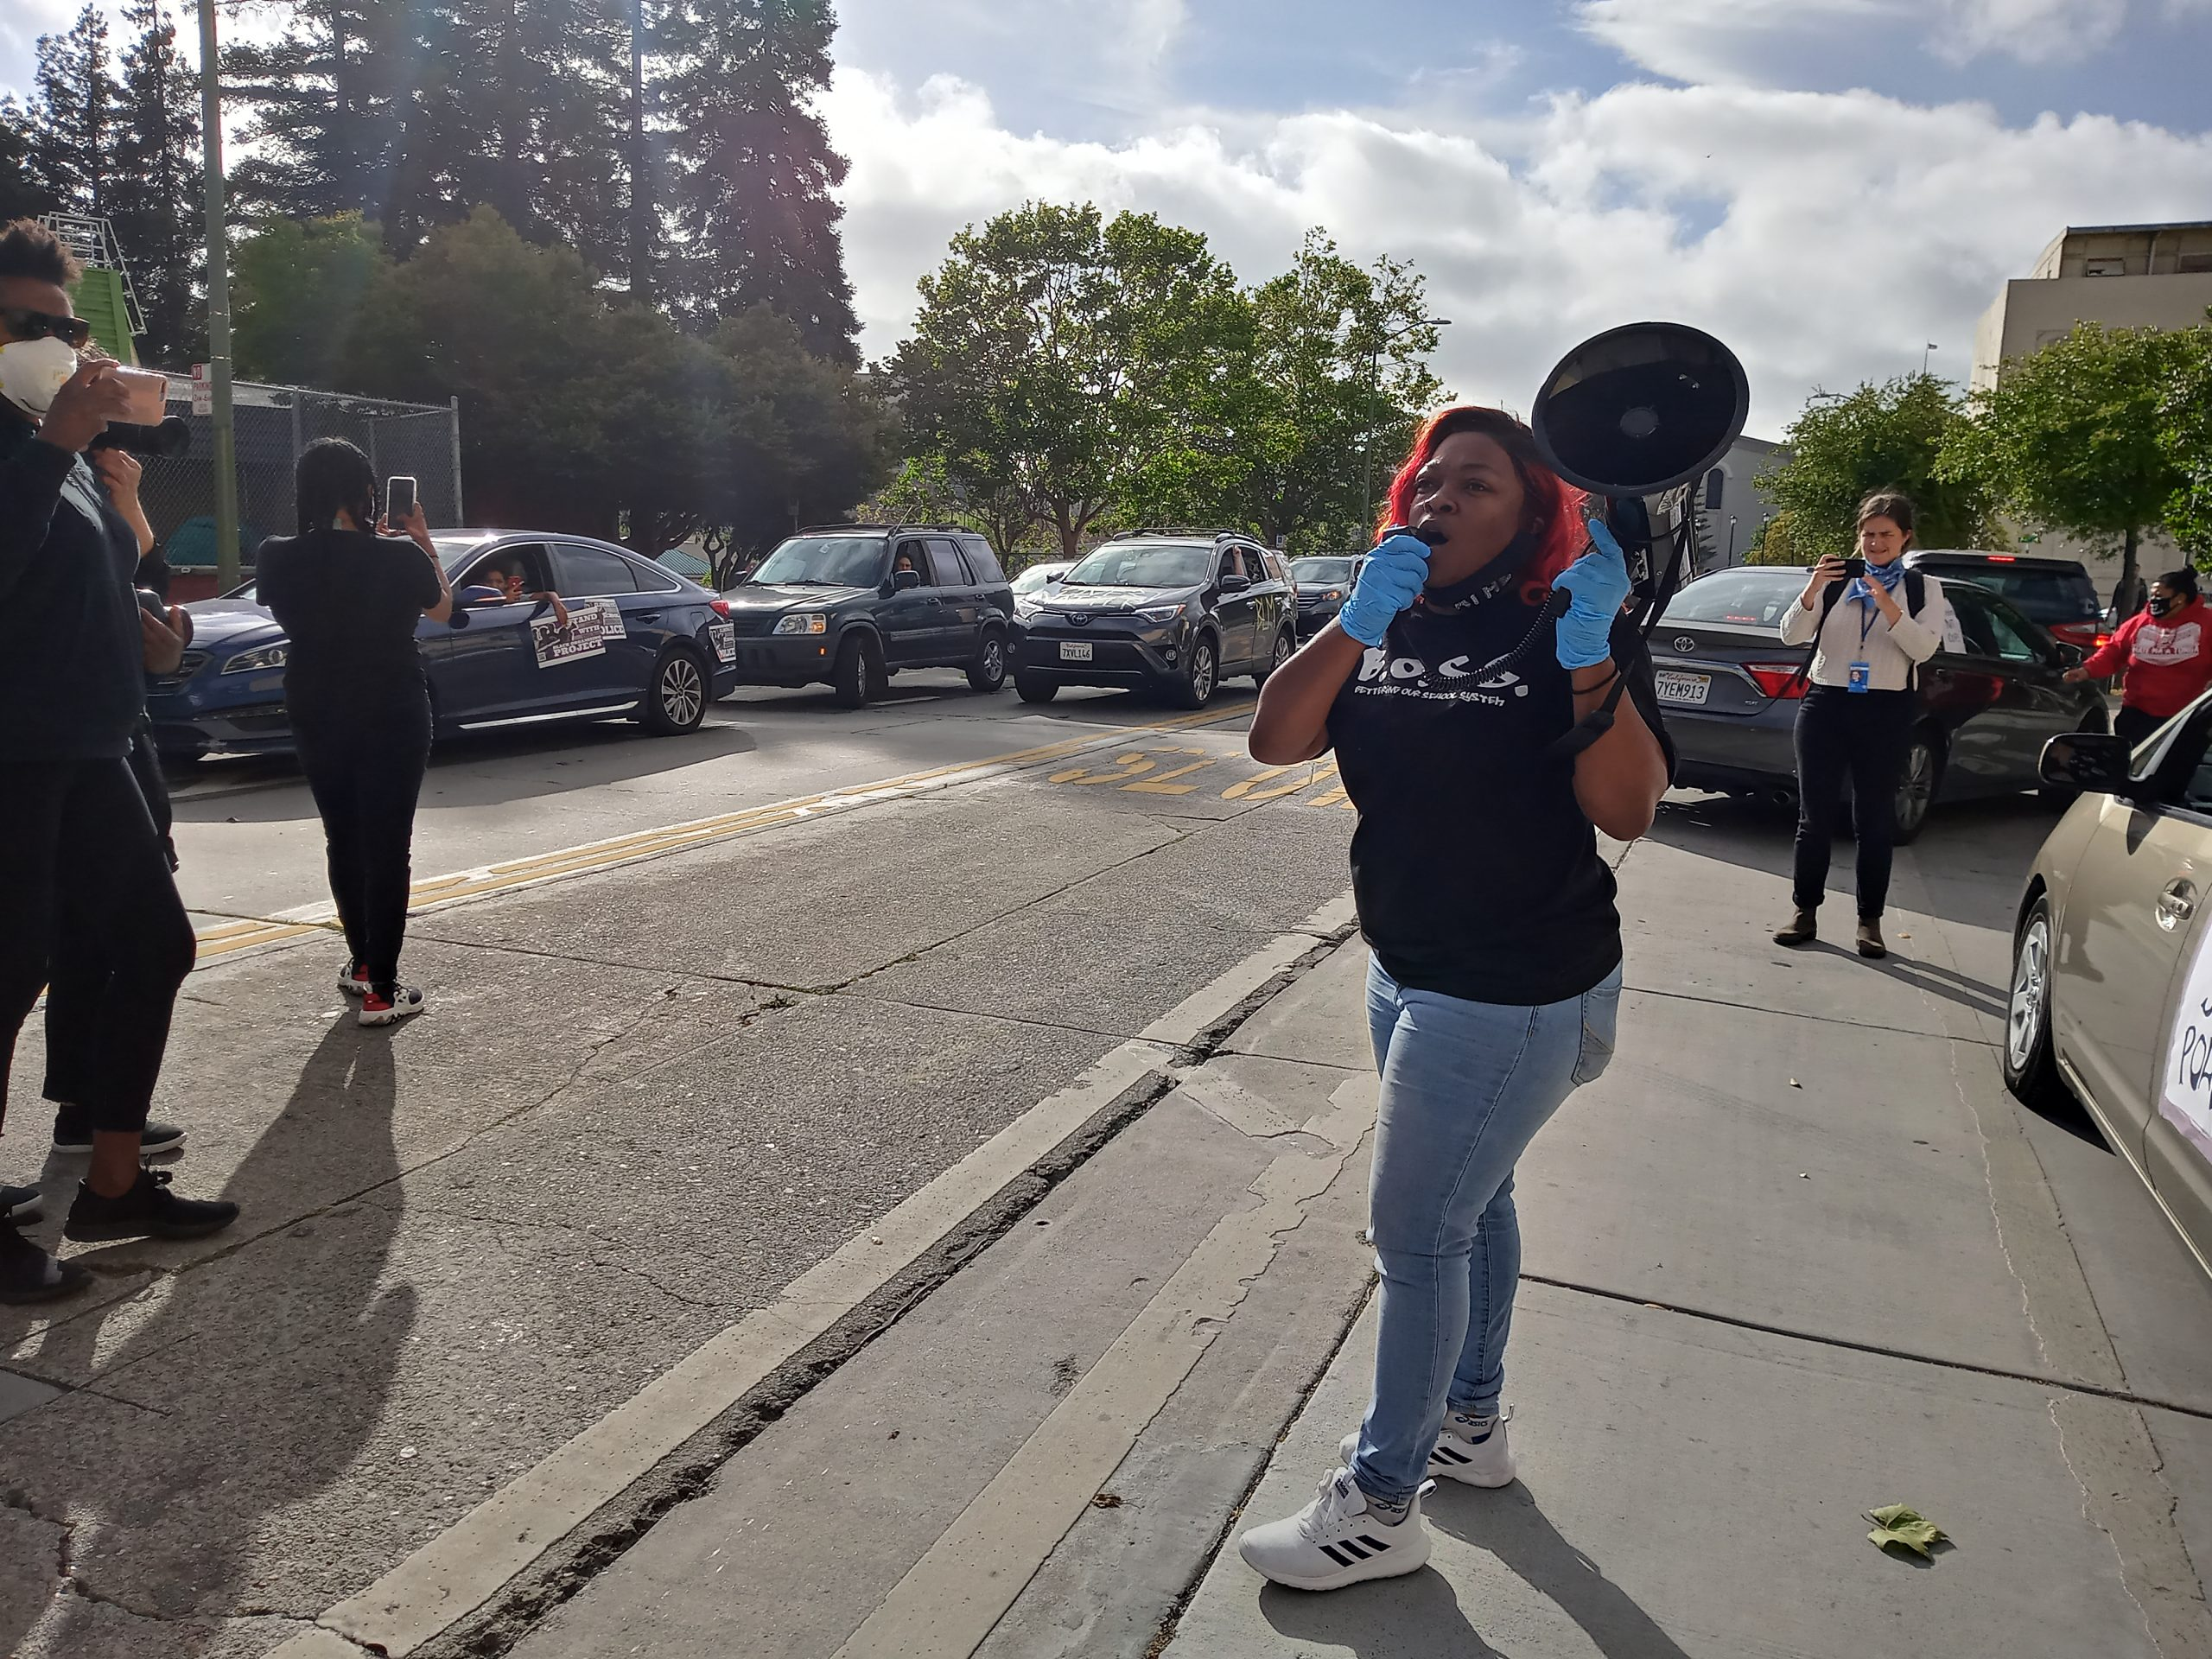 An image of an African American woman speaking into a megaphone from a sidewalk